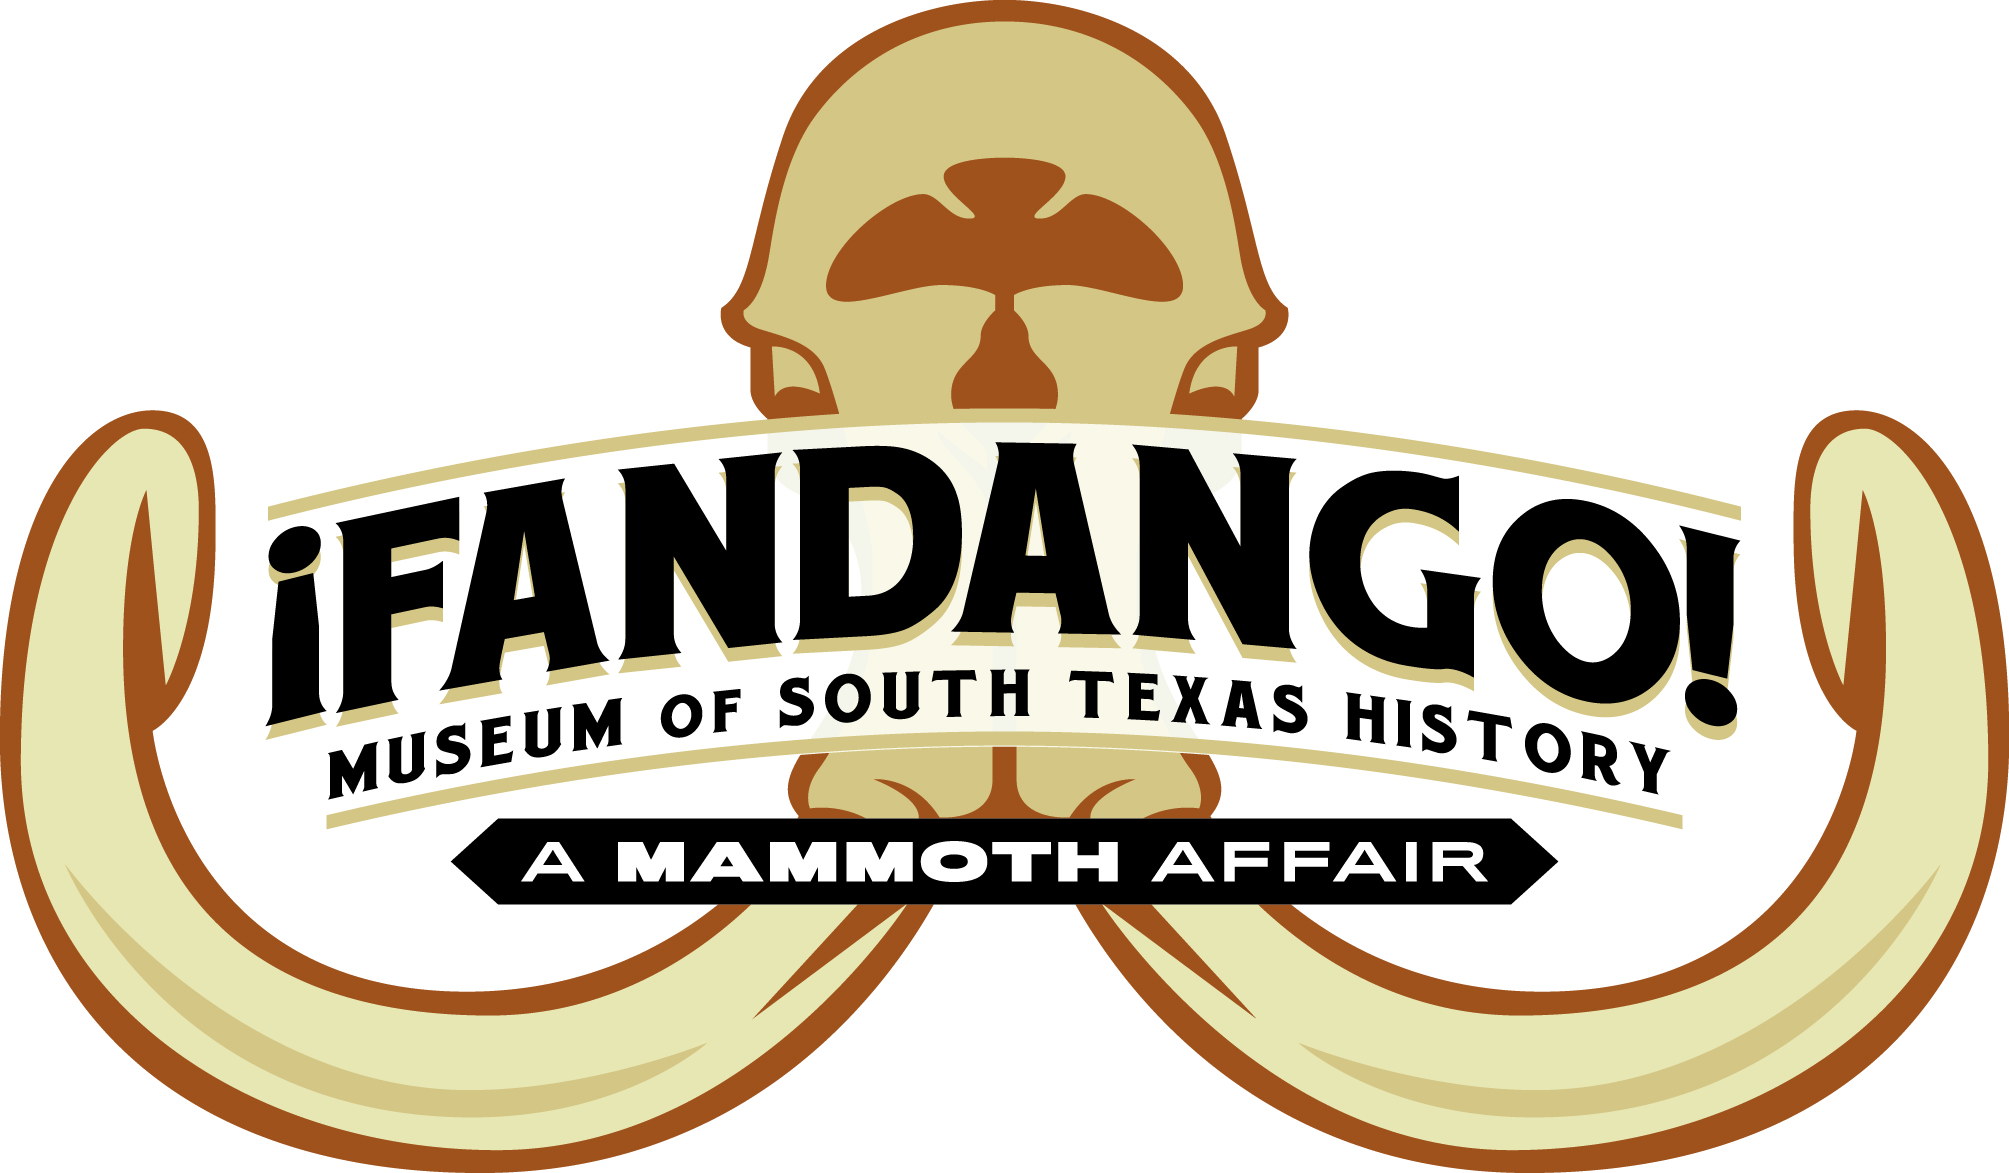 fandango. ¡fandango! 2017 will be a mammoth affair. it celebrate the giant megafaunas that roamed south texas during pleistocene or ice age. ¡ fandango! fandango